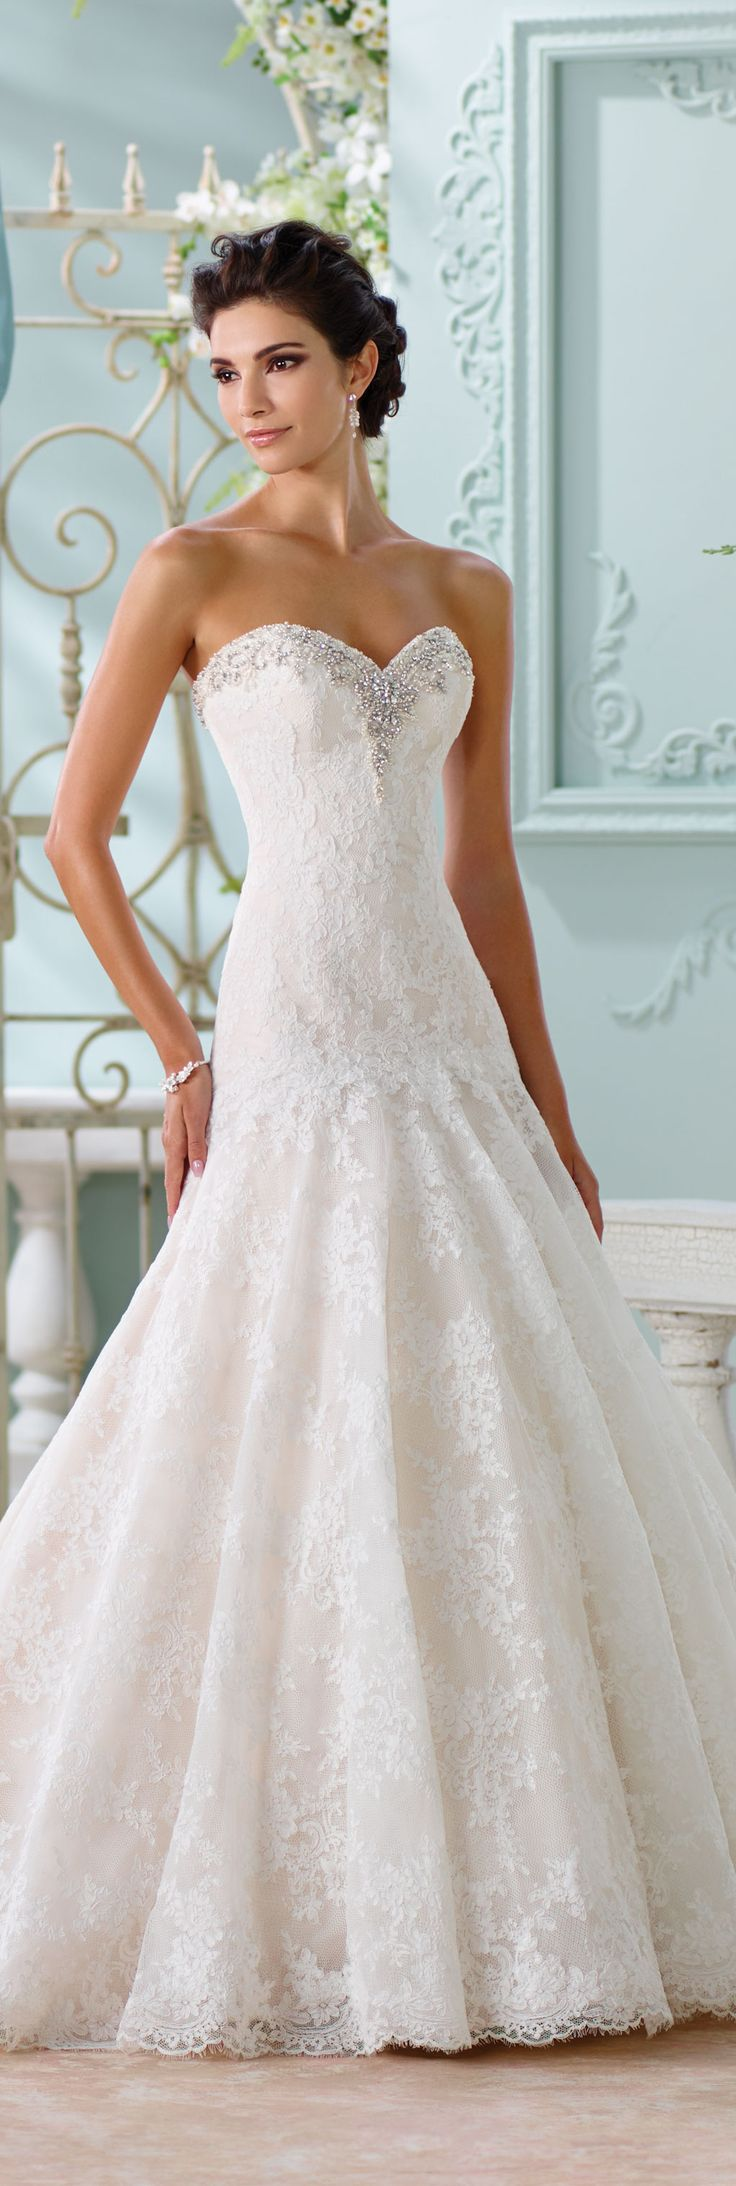 The David Tutera for Mon Cheri Spring 2016 Wedding Gown Collection - Style No. 116205 Chasca #laceweddingdresses